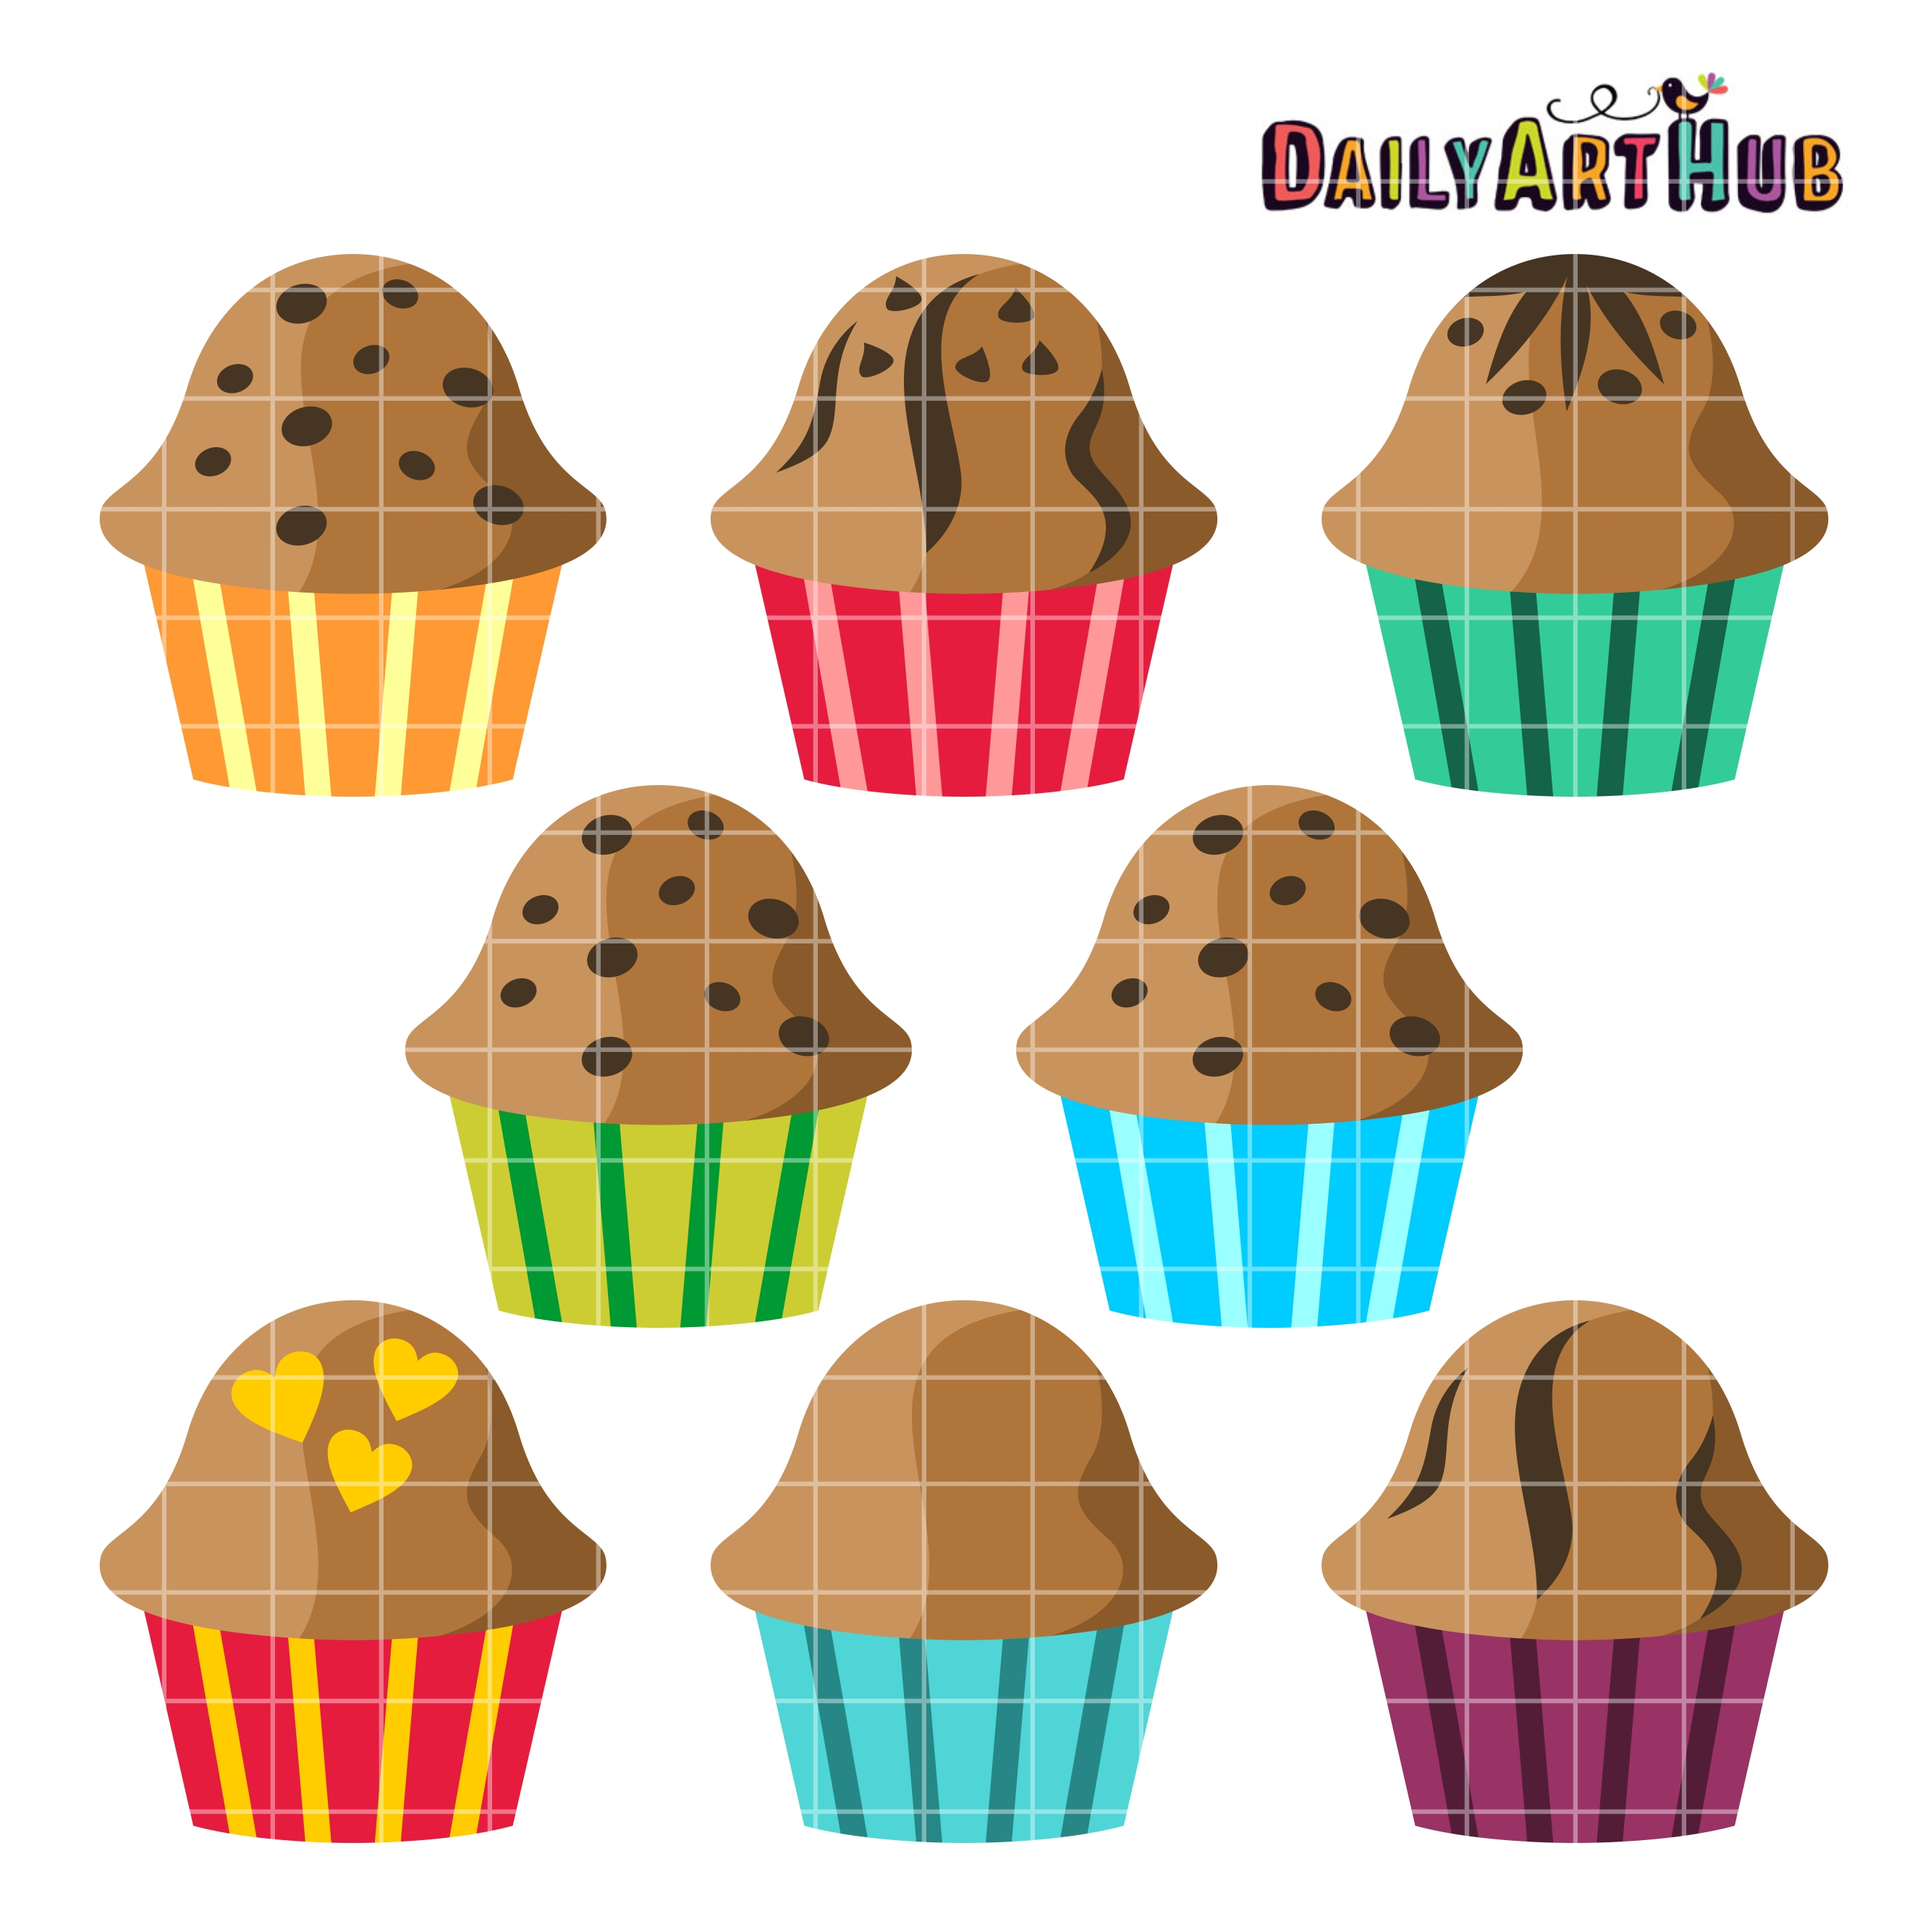 Muffins clipart. Clip art set daily